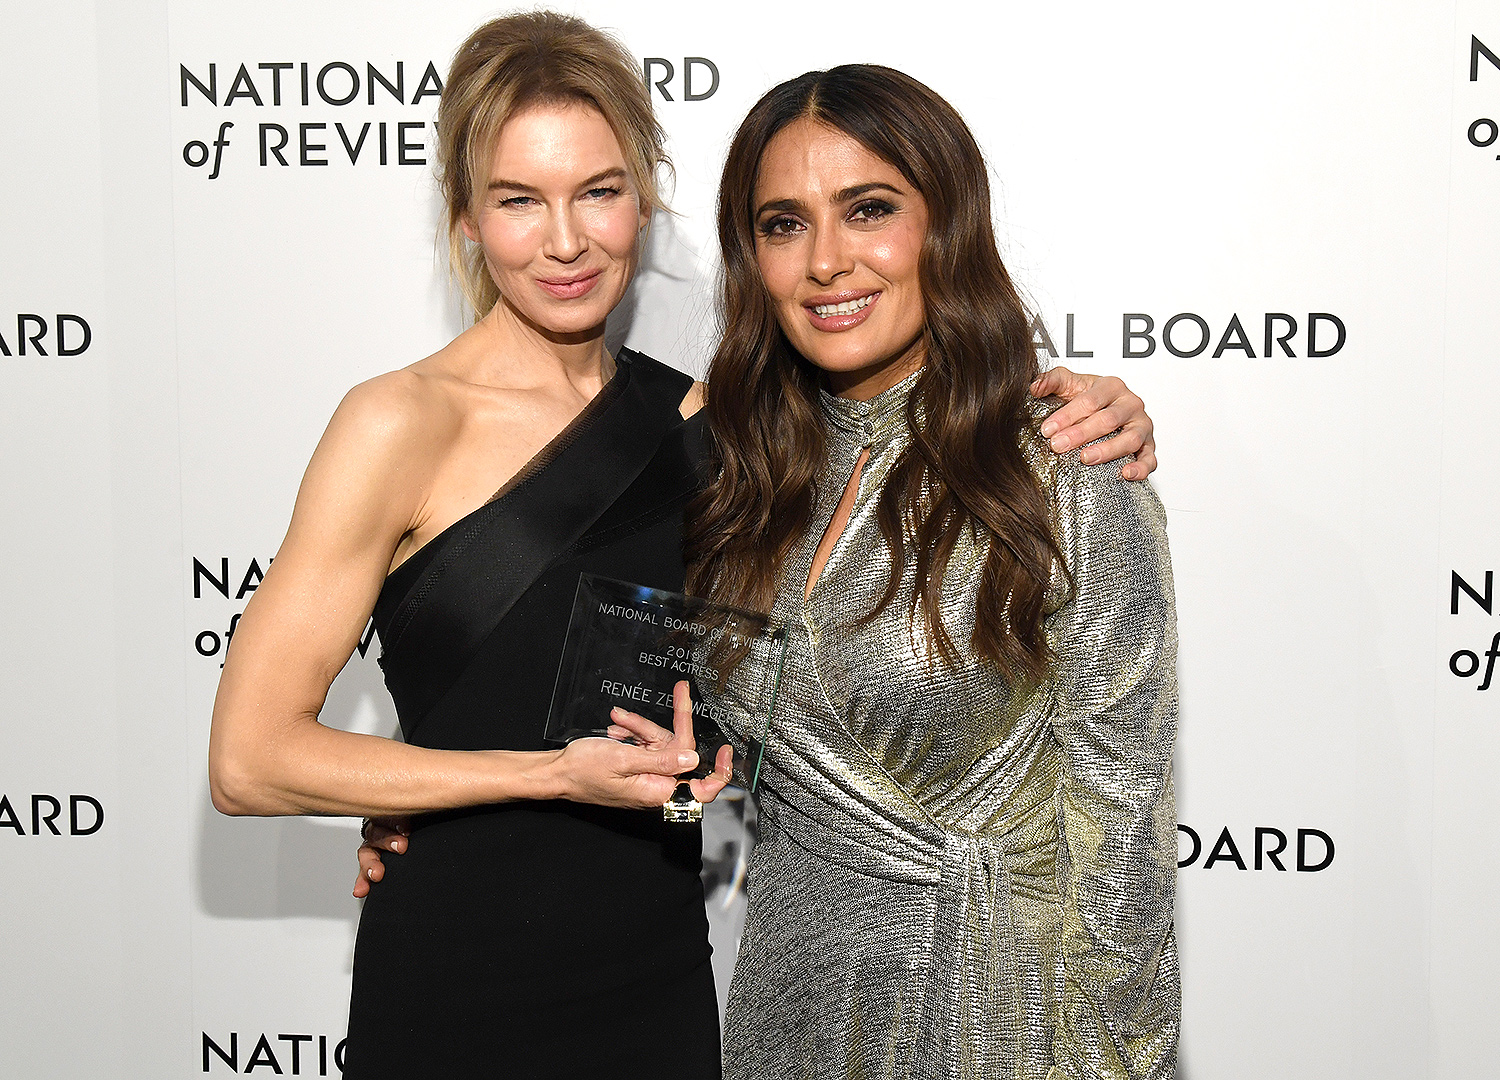 Renee Zellweger and Salma Hayek Pinault